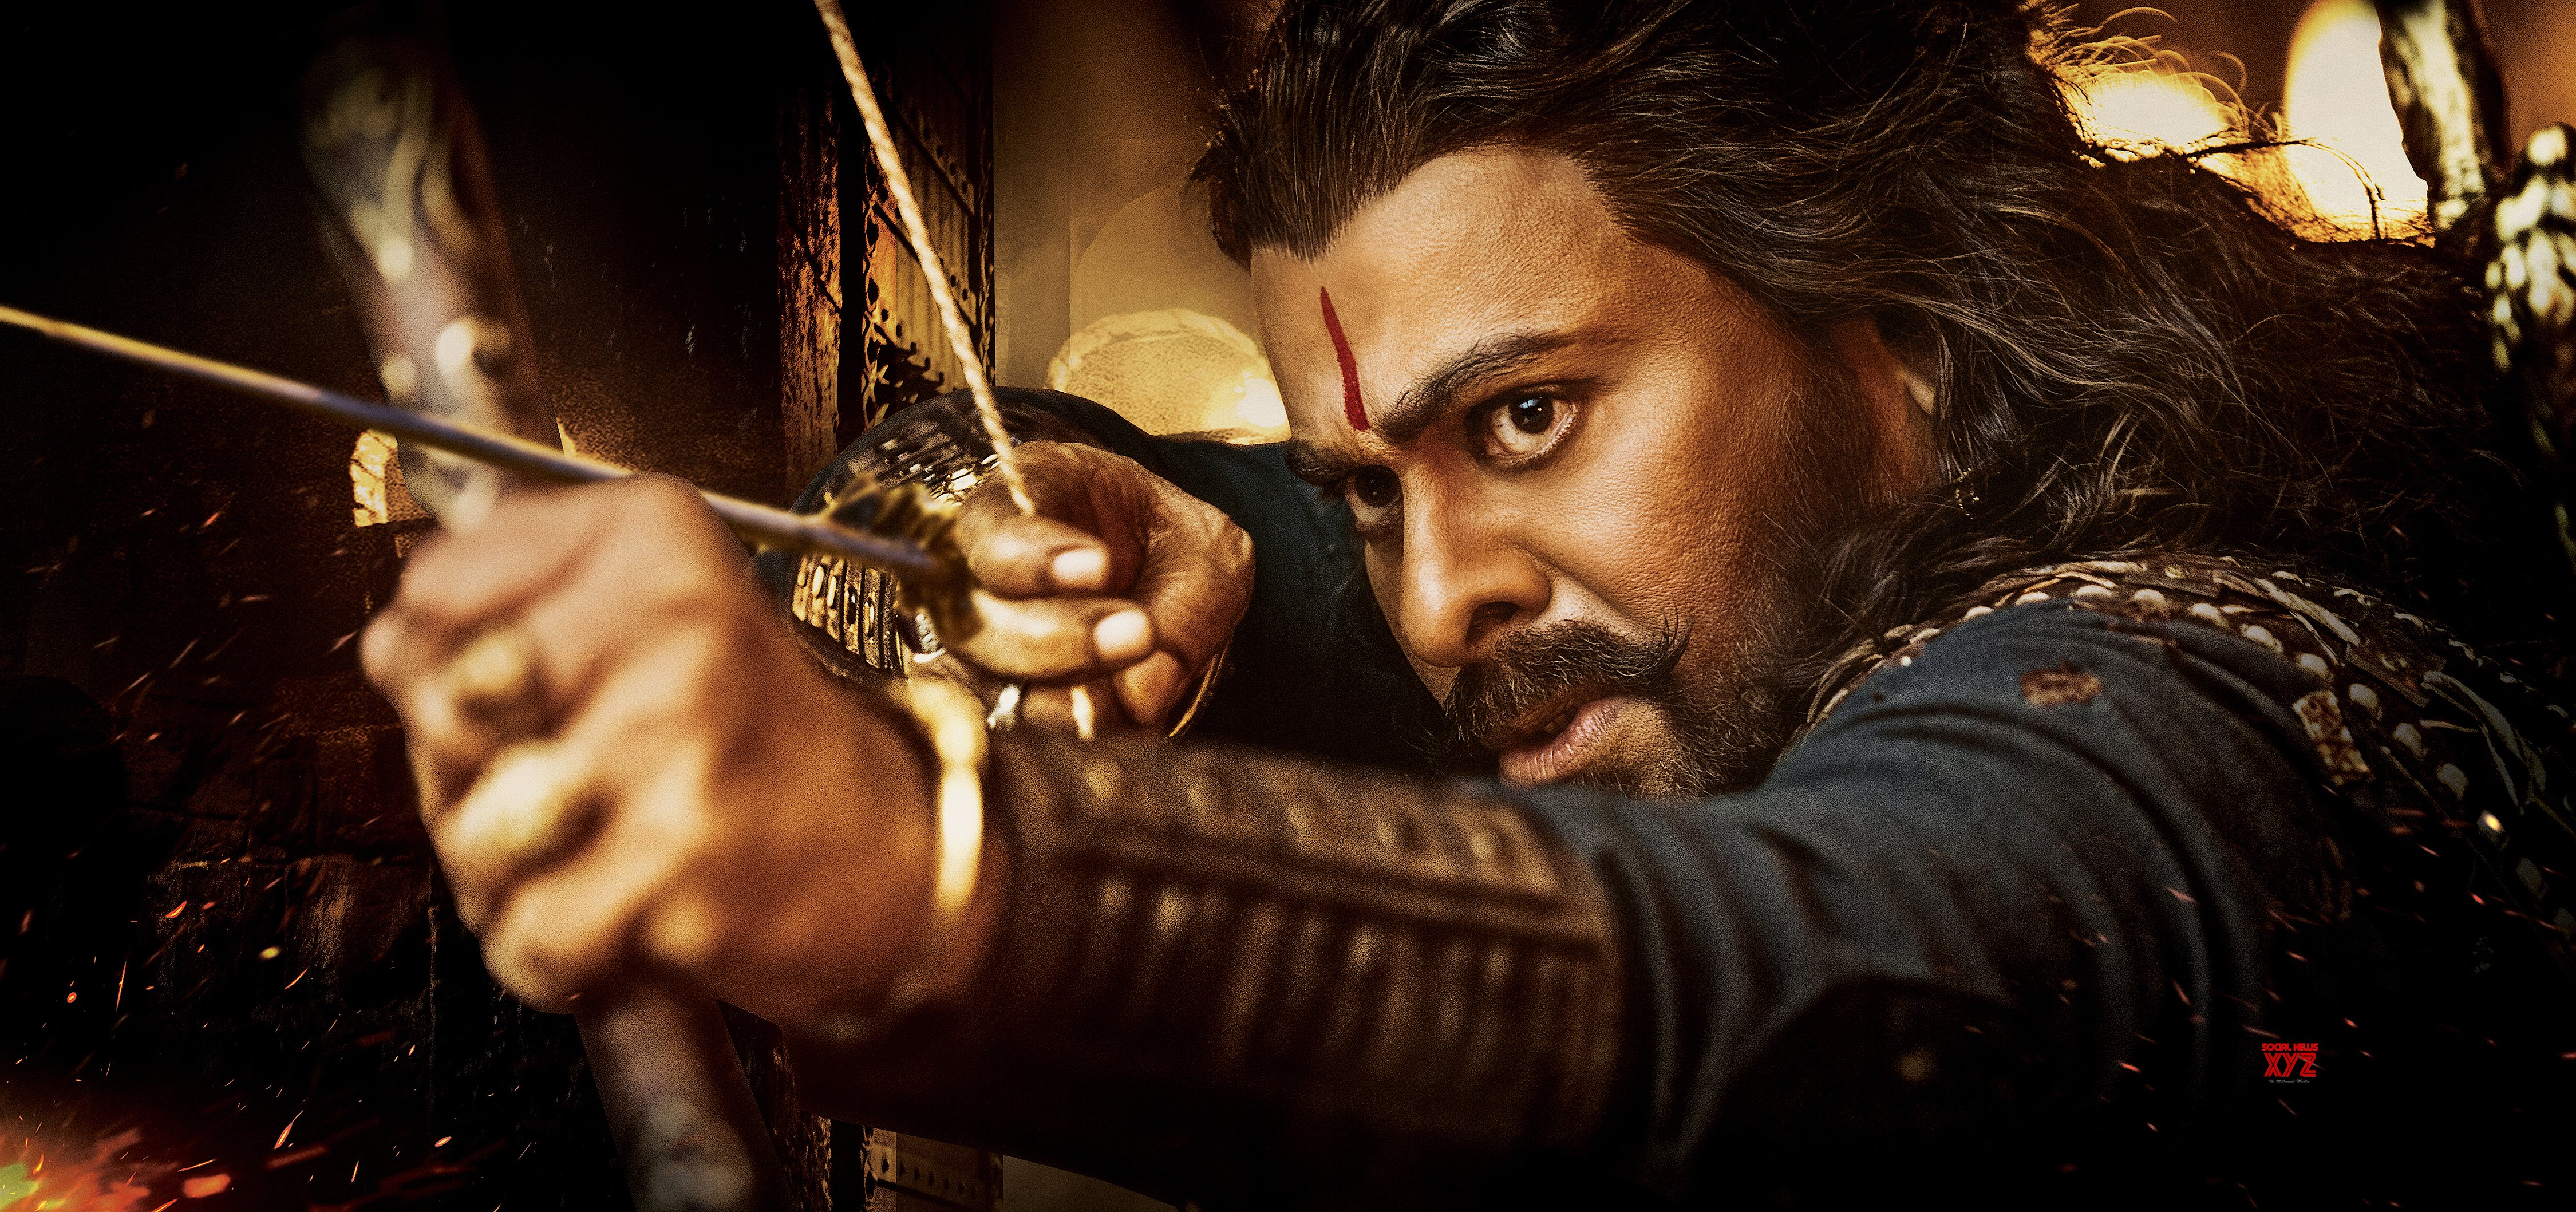 Sye Raa Narasimha Reddy movie grossed 4.7 crores with a Share of 2.8 crores on Day 11 in AP/TS